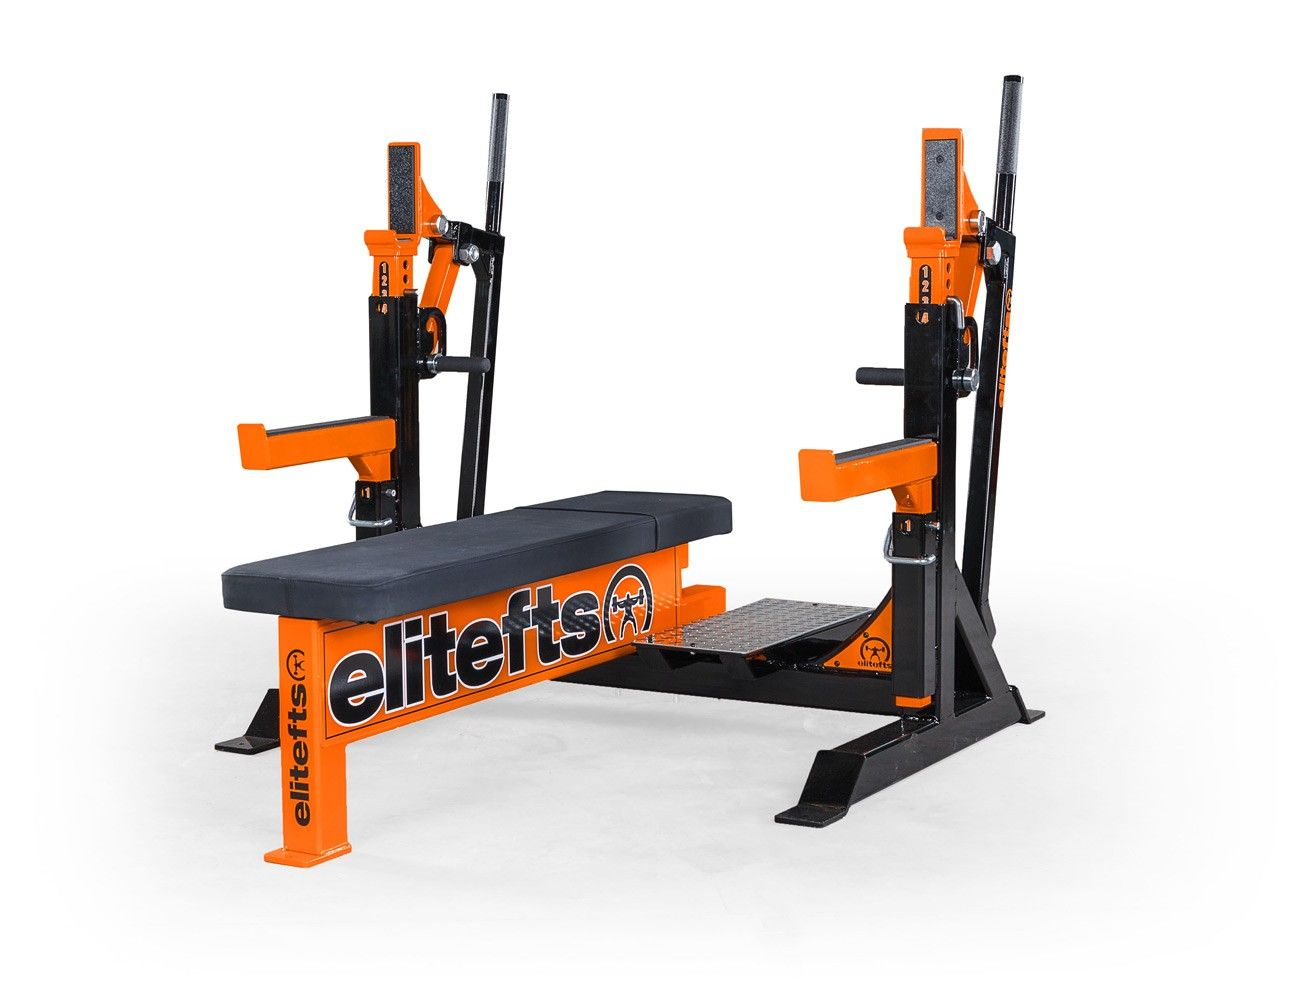 Elitefts Signature Competition Olympic Bench With Safeties Foot Lever And Logo Panels No Equipment Workout Bench Squat Rack